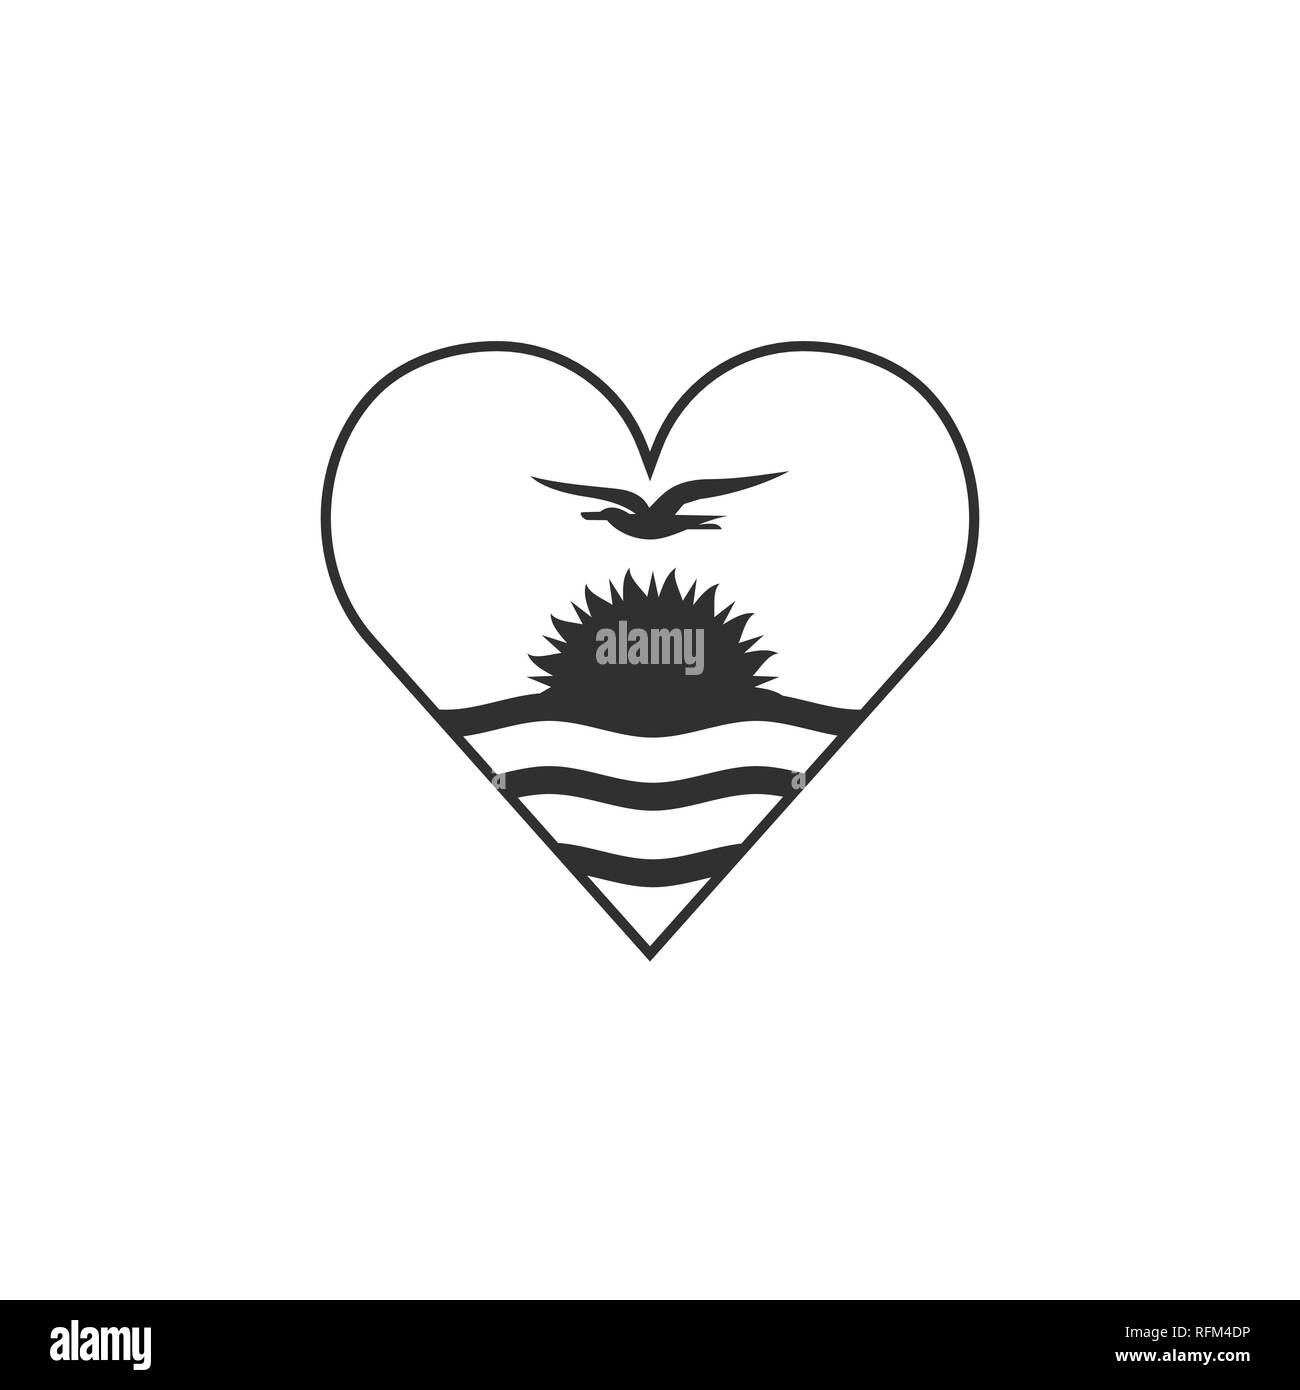 Kiribati flag icon in a heart shape in black outline flat design. Independence day or National day holiday concept. - Stock Image